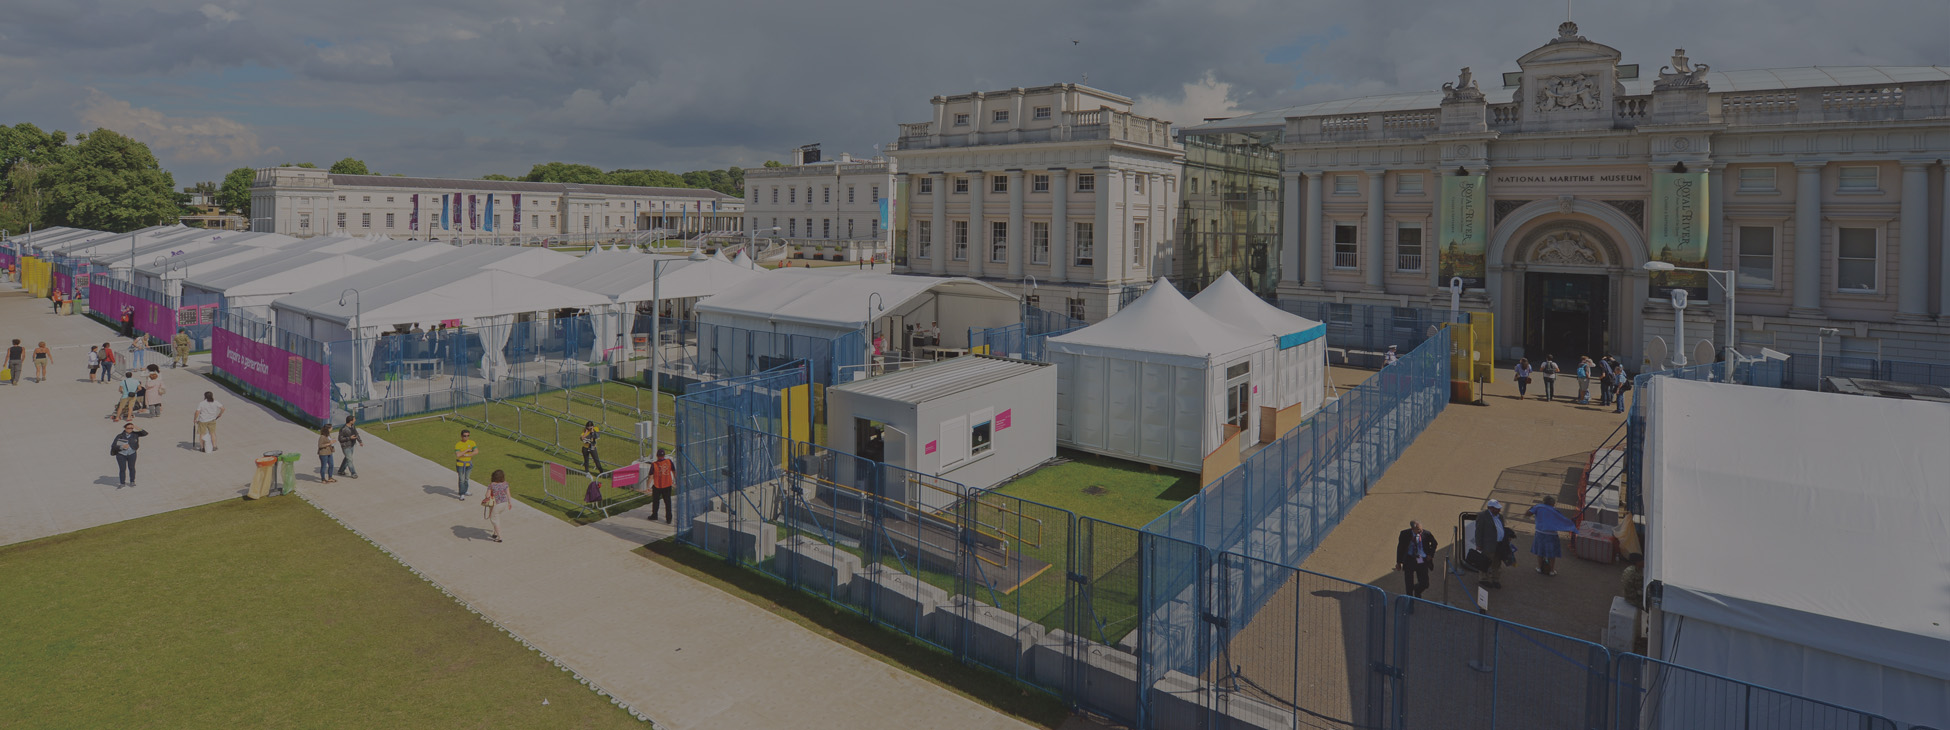 Official supplier to the London 2012 Olympic venues